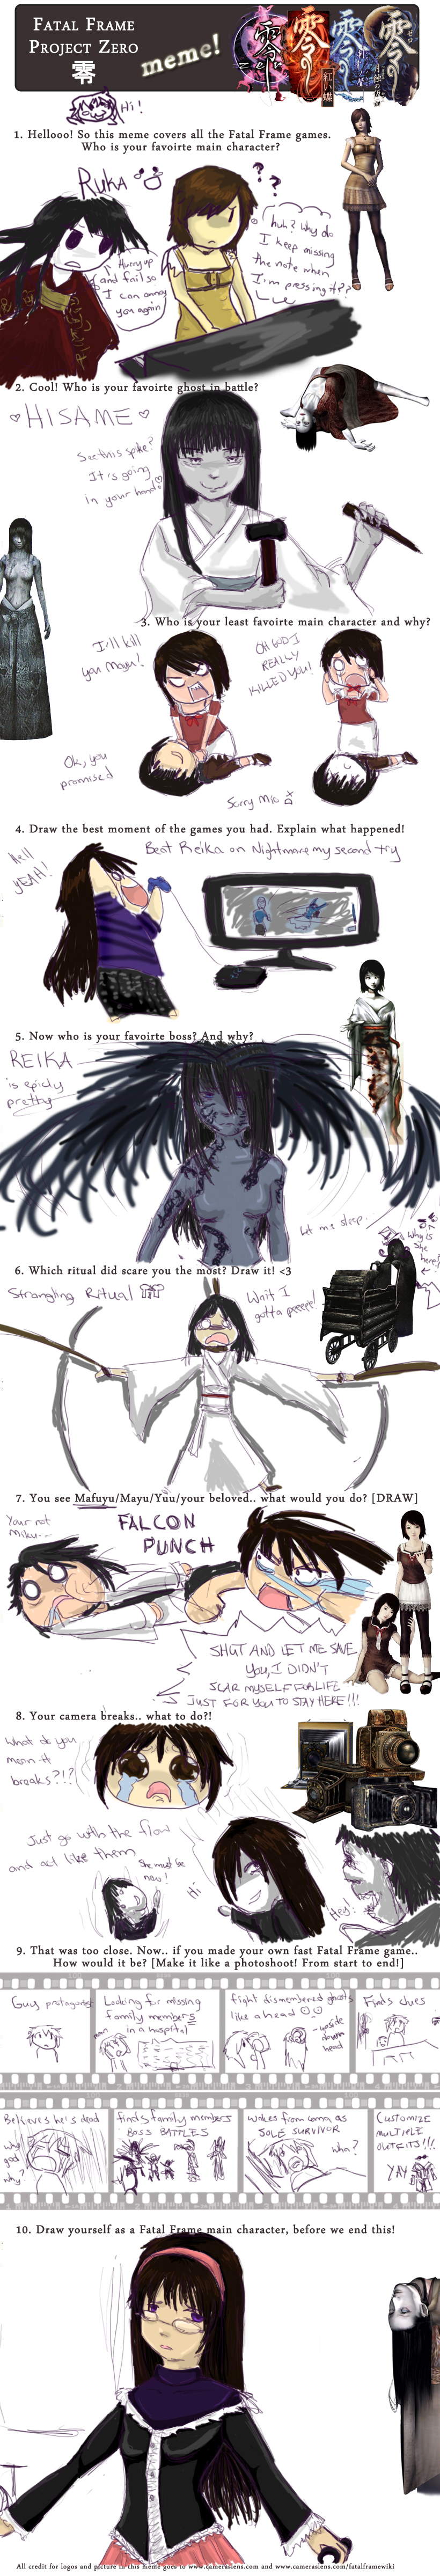 DD Fatal Frame MEME 3 by DothackerDiann on DeviantArt